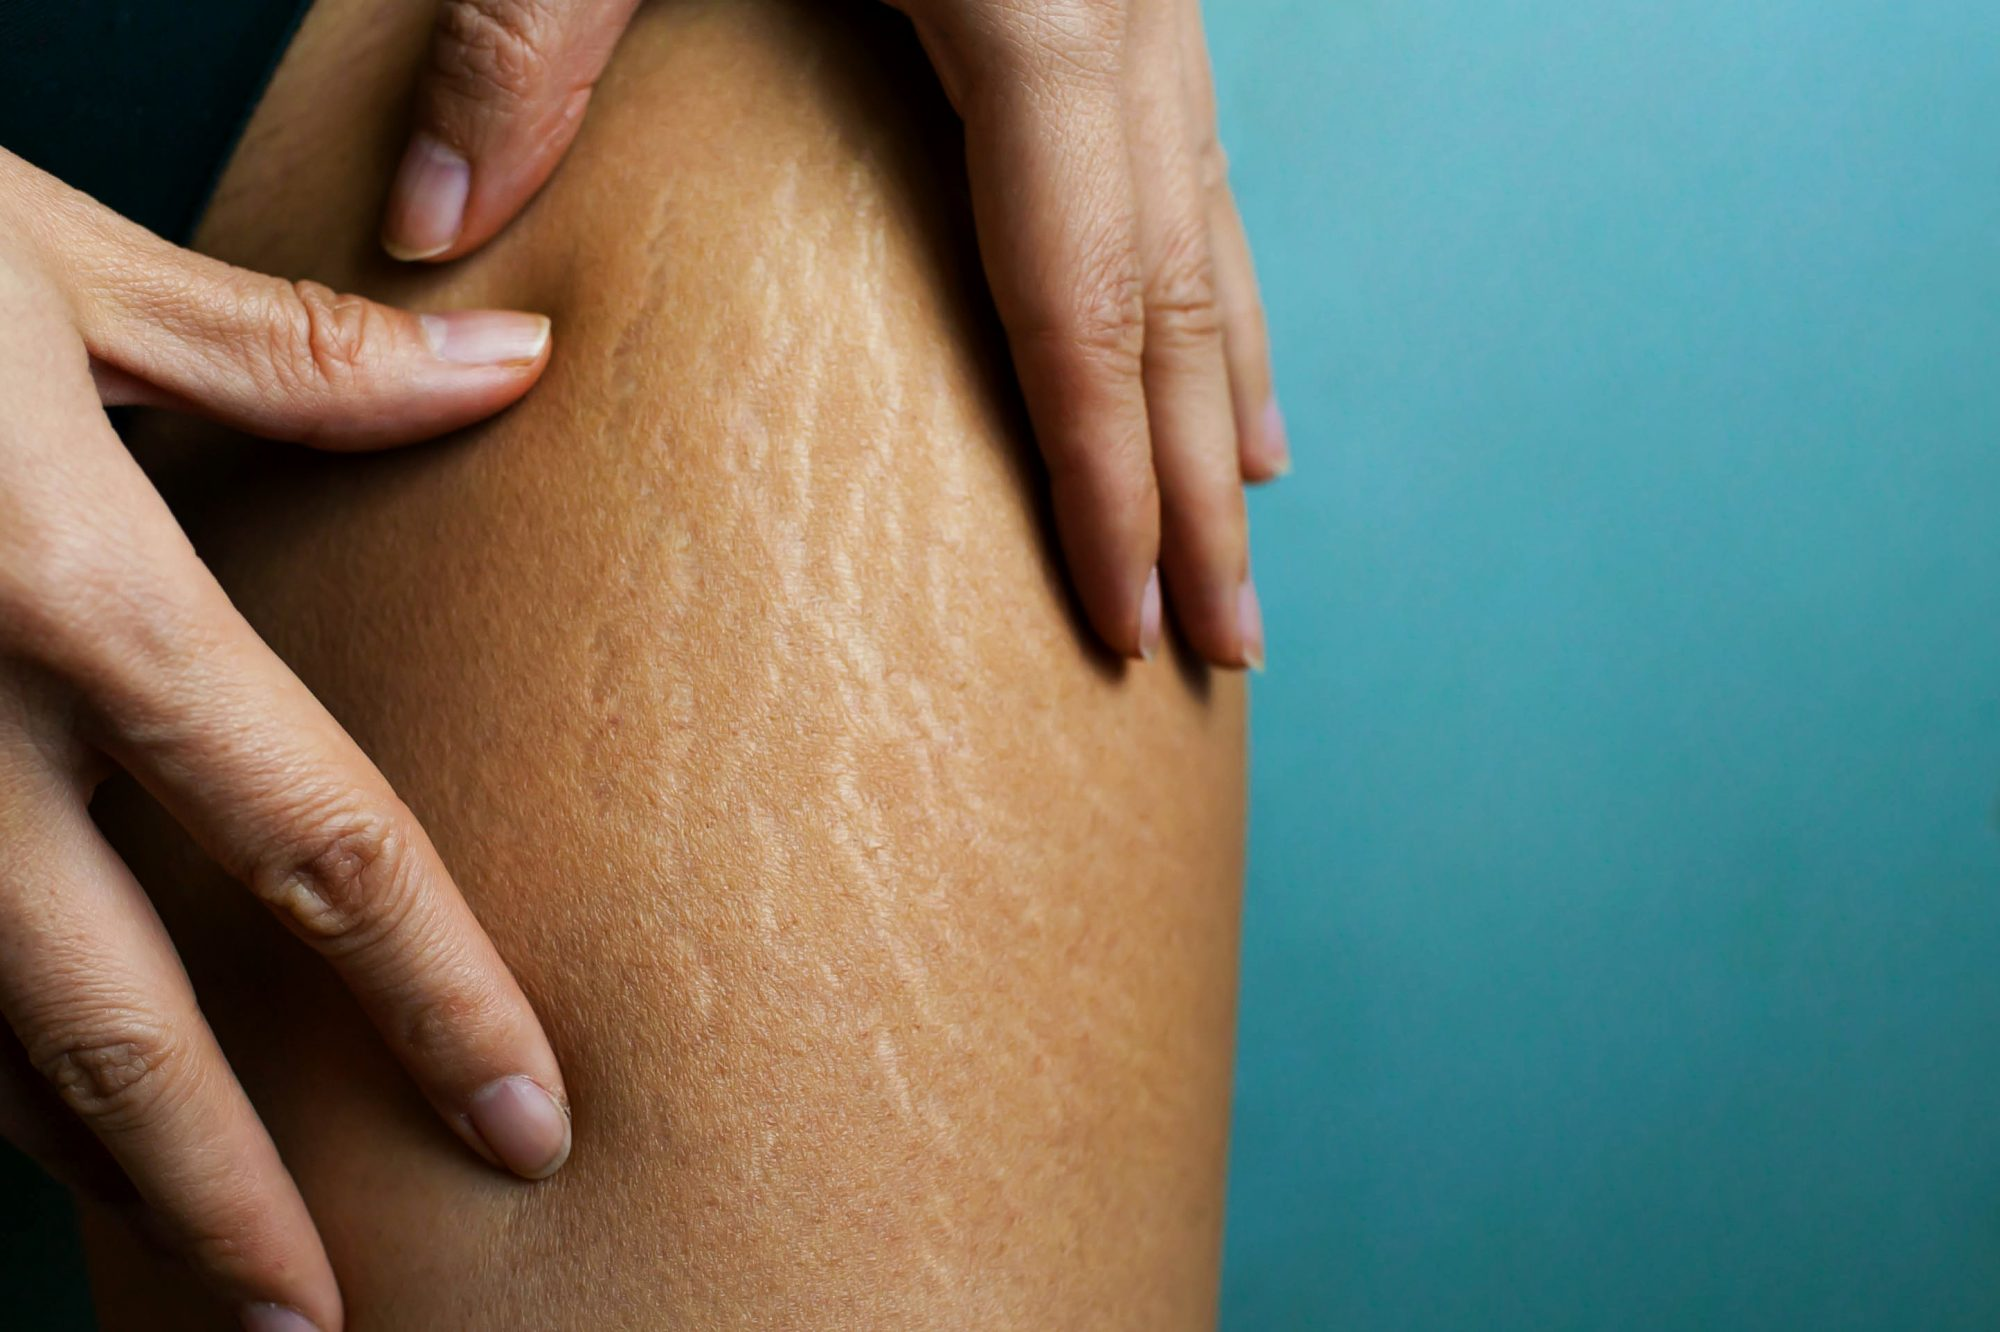 Why weight loss causes stretch marks